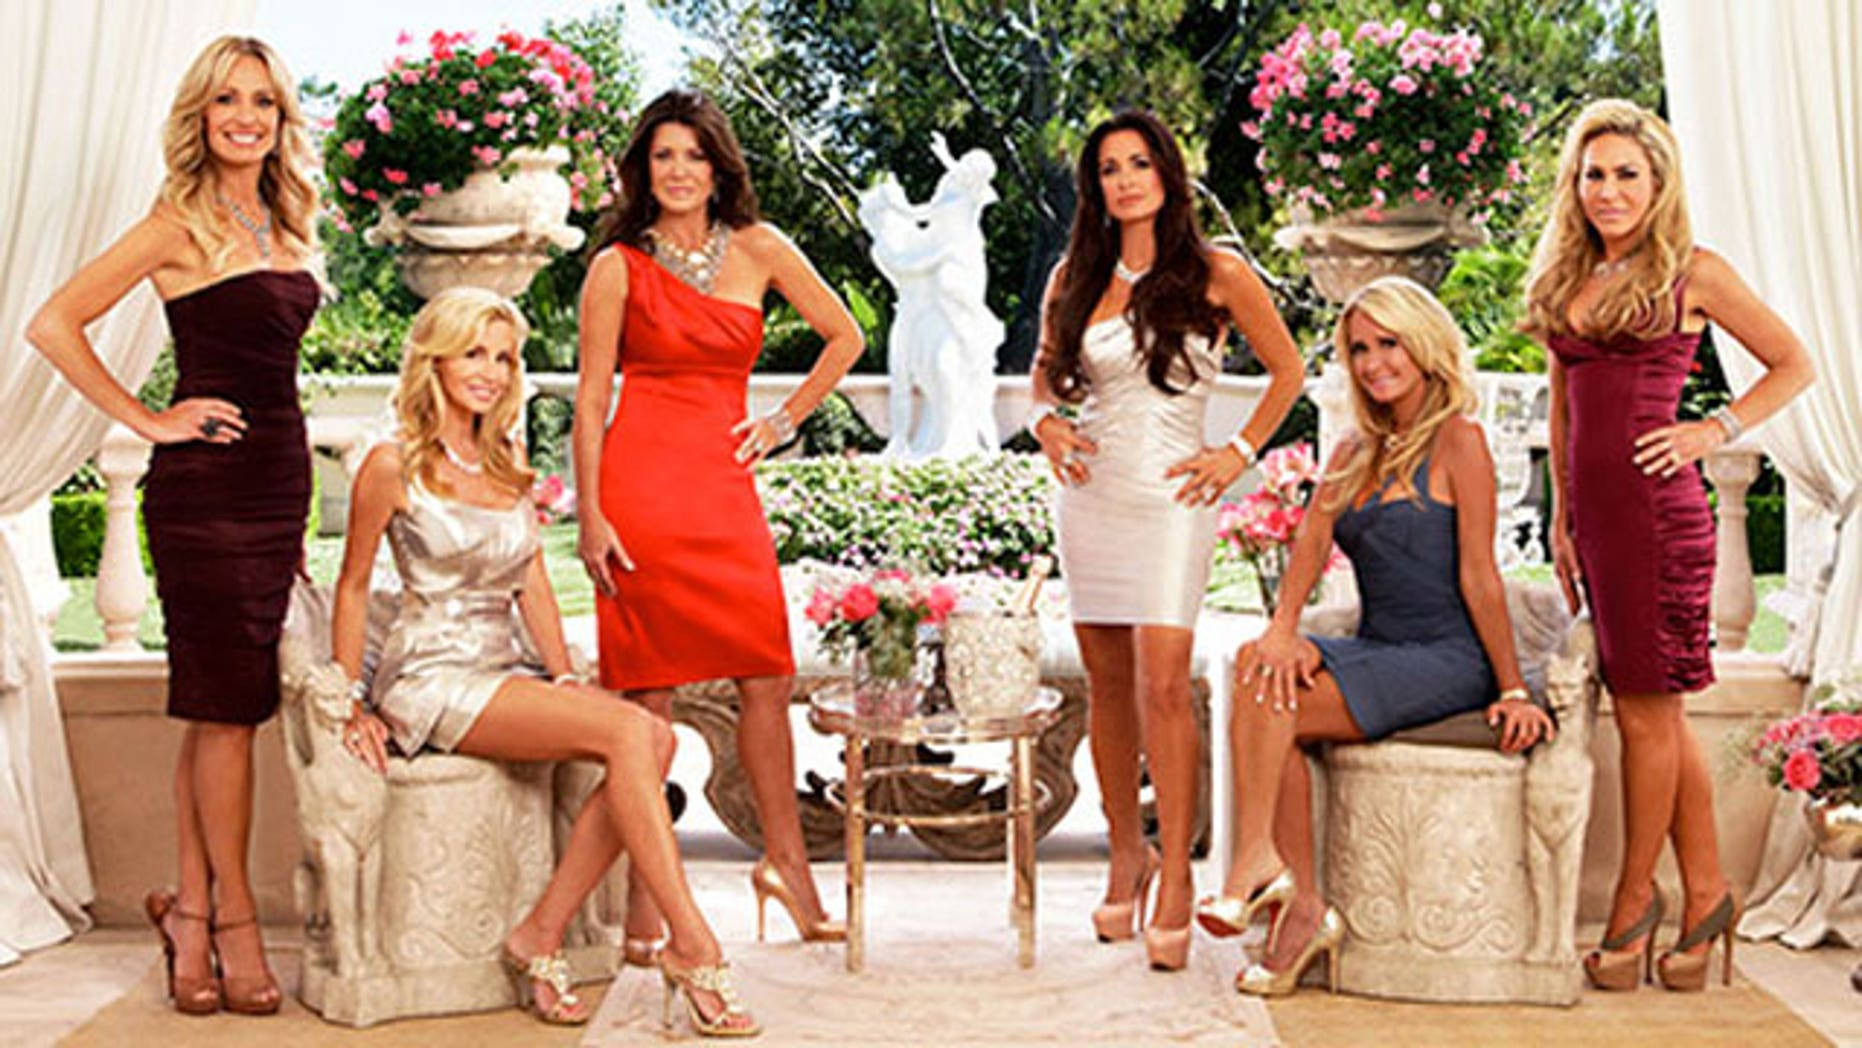 The cast of 'The Real Housewives of Beverly Hills'